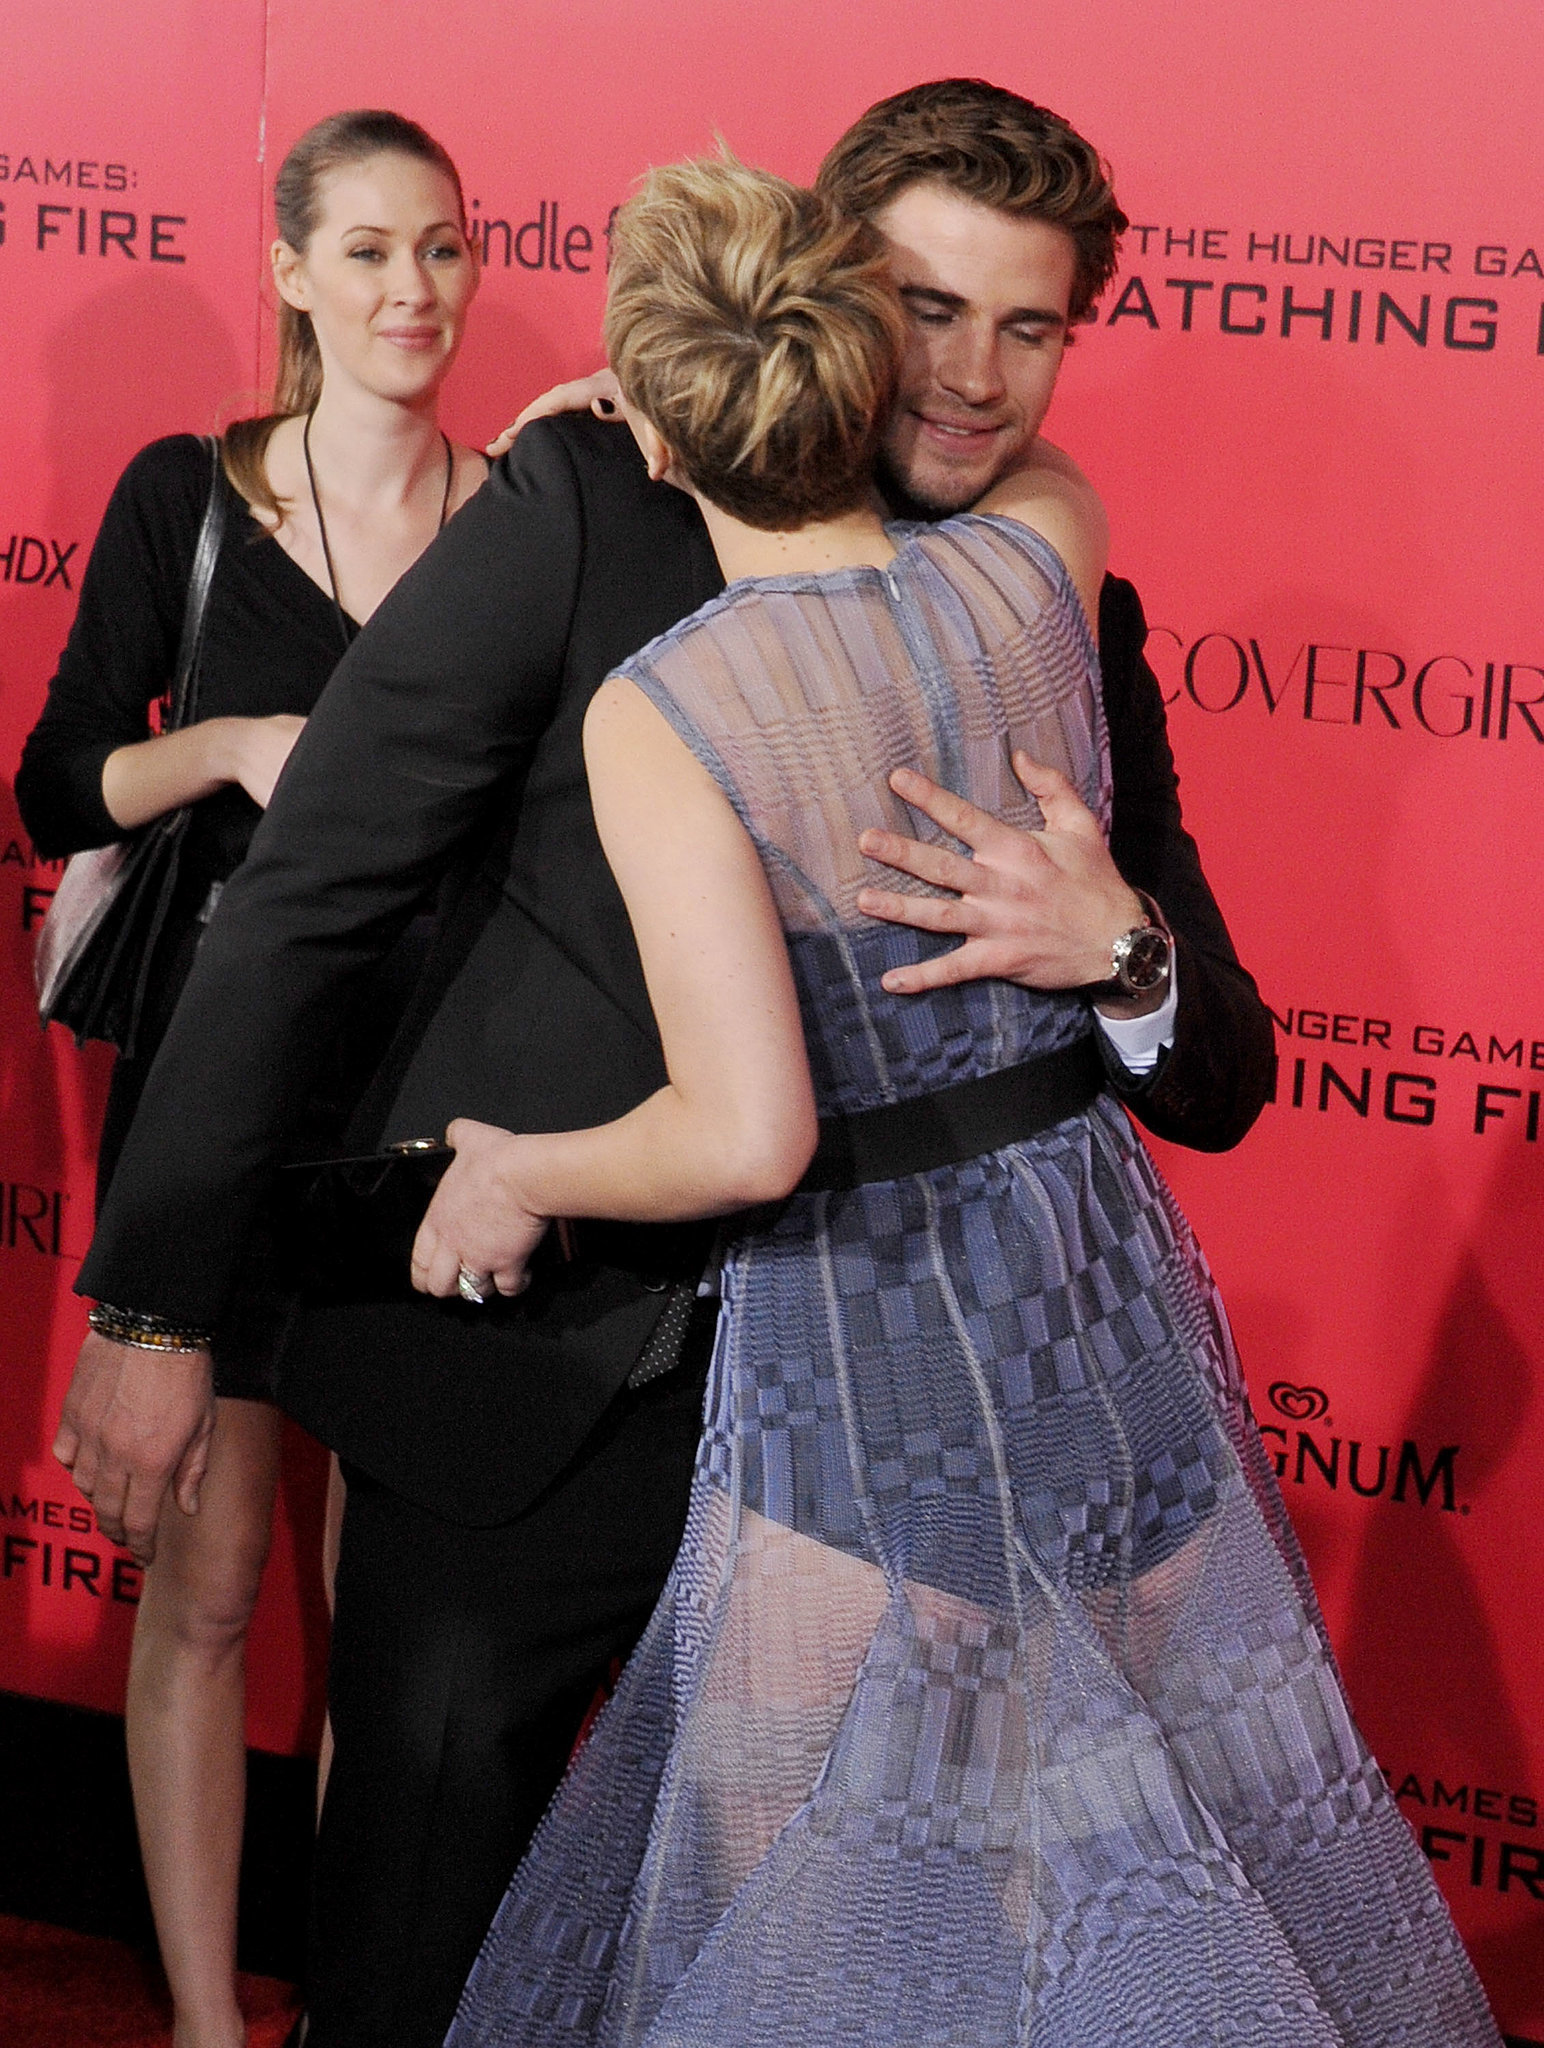 When Liam Hemsworth Leaned Over to Hug Her